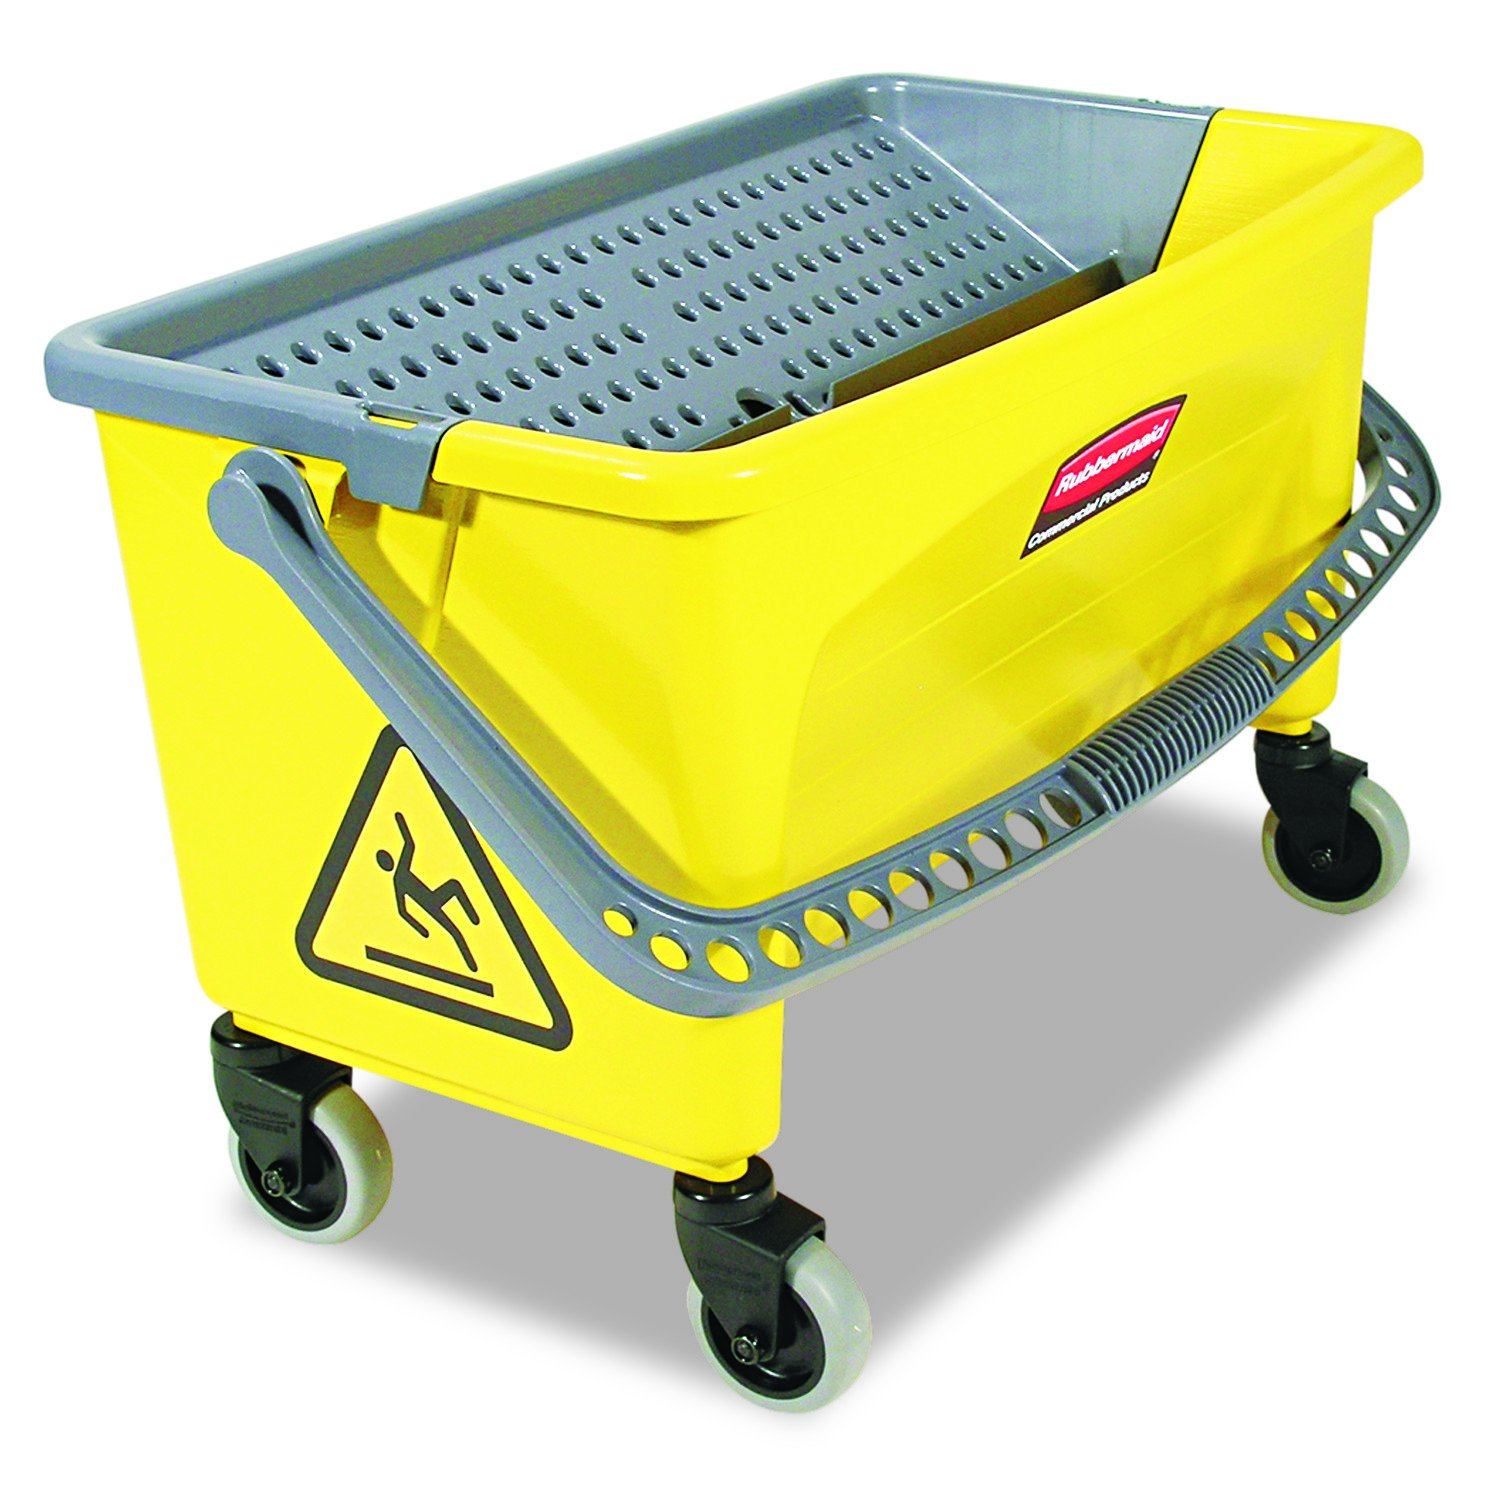 Rubbermaid Commercial HYGEN Q90088YW HYGEN Press Wring Bucket for Microfiber Flat Mops, Yellow FGQ90088YEL